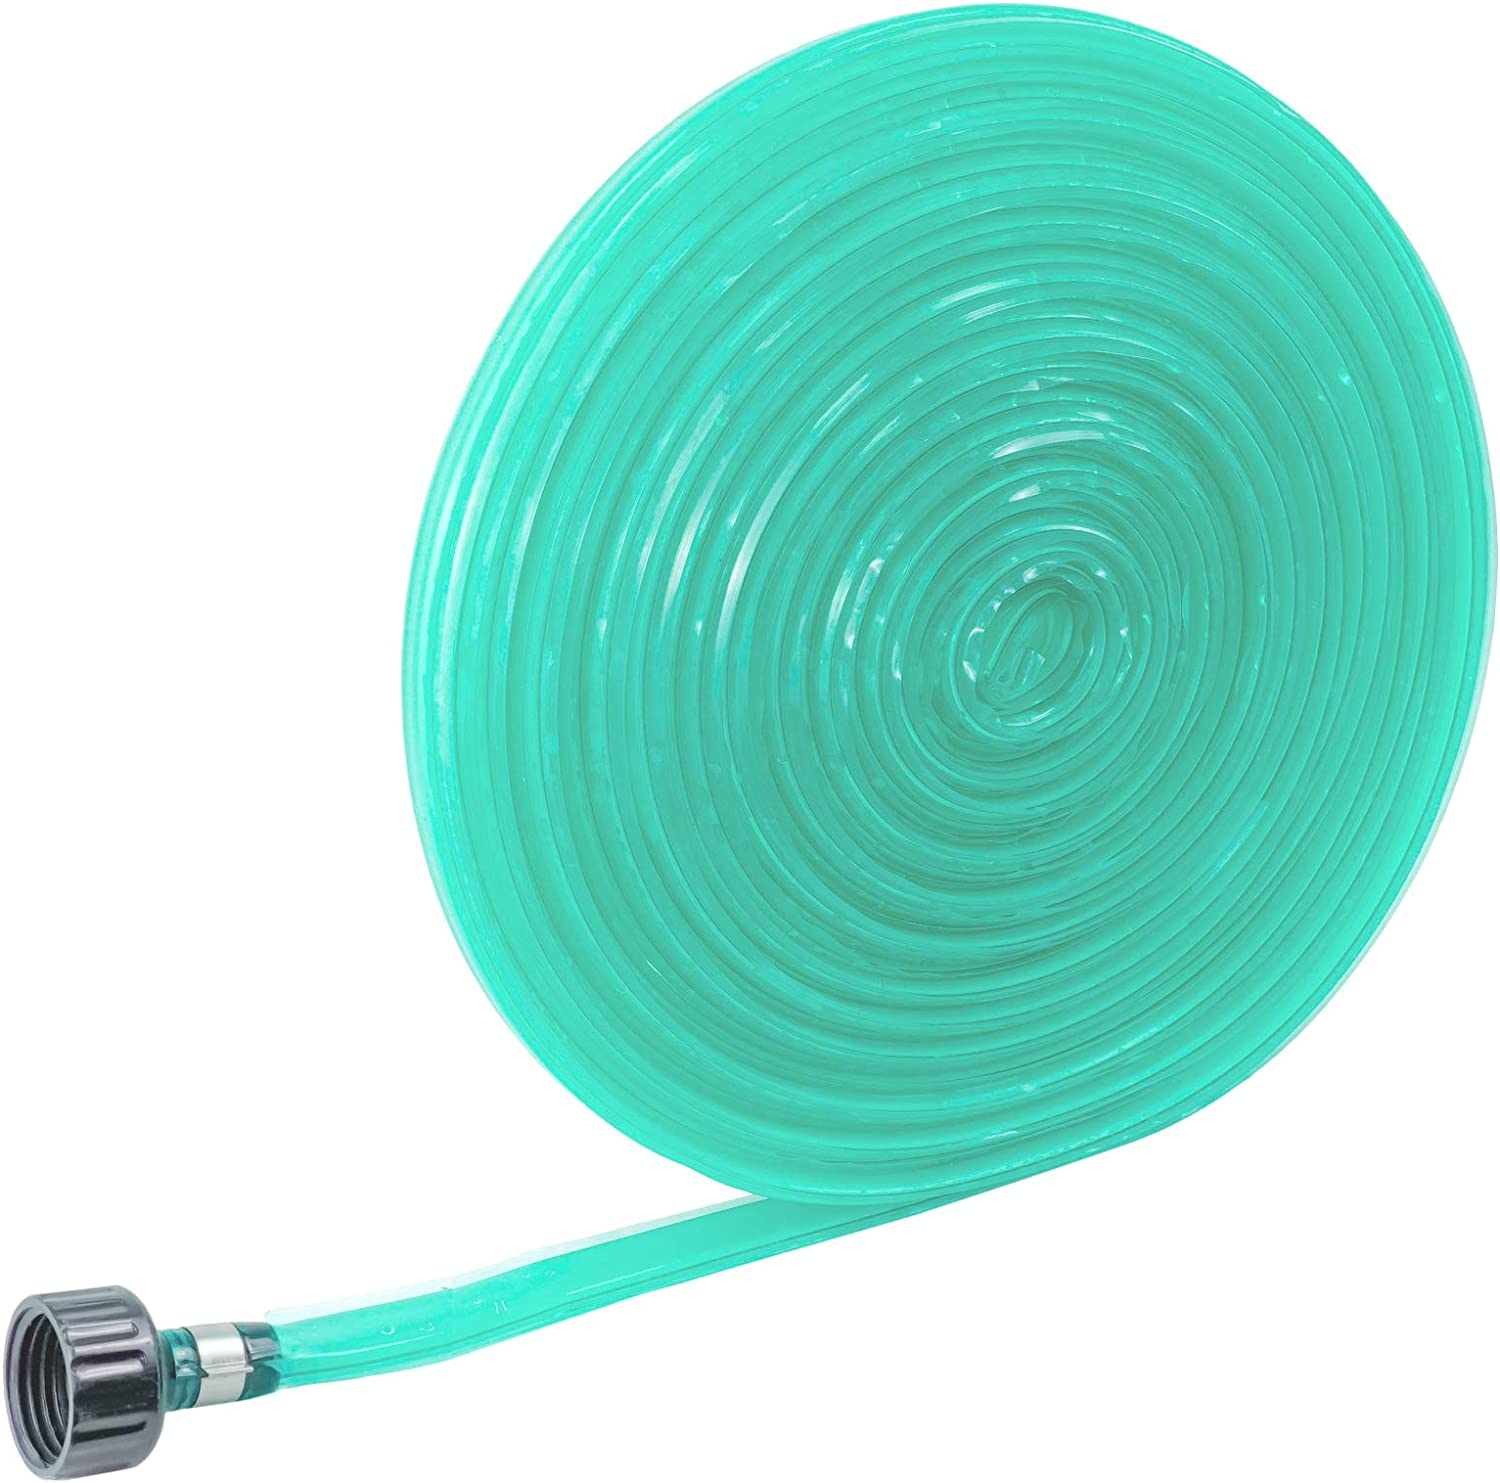 N\A FLORIAX Heavy Duty Sprinkler and Soaker Hose 50FT Ground Soaker Garden Hose Savings 70% Water Dripping Water Hose Perfect for Garden Flowers Beds